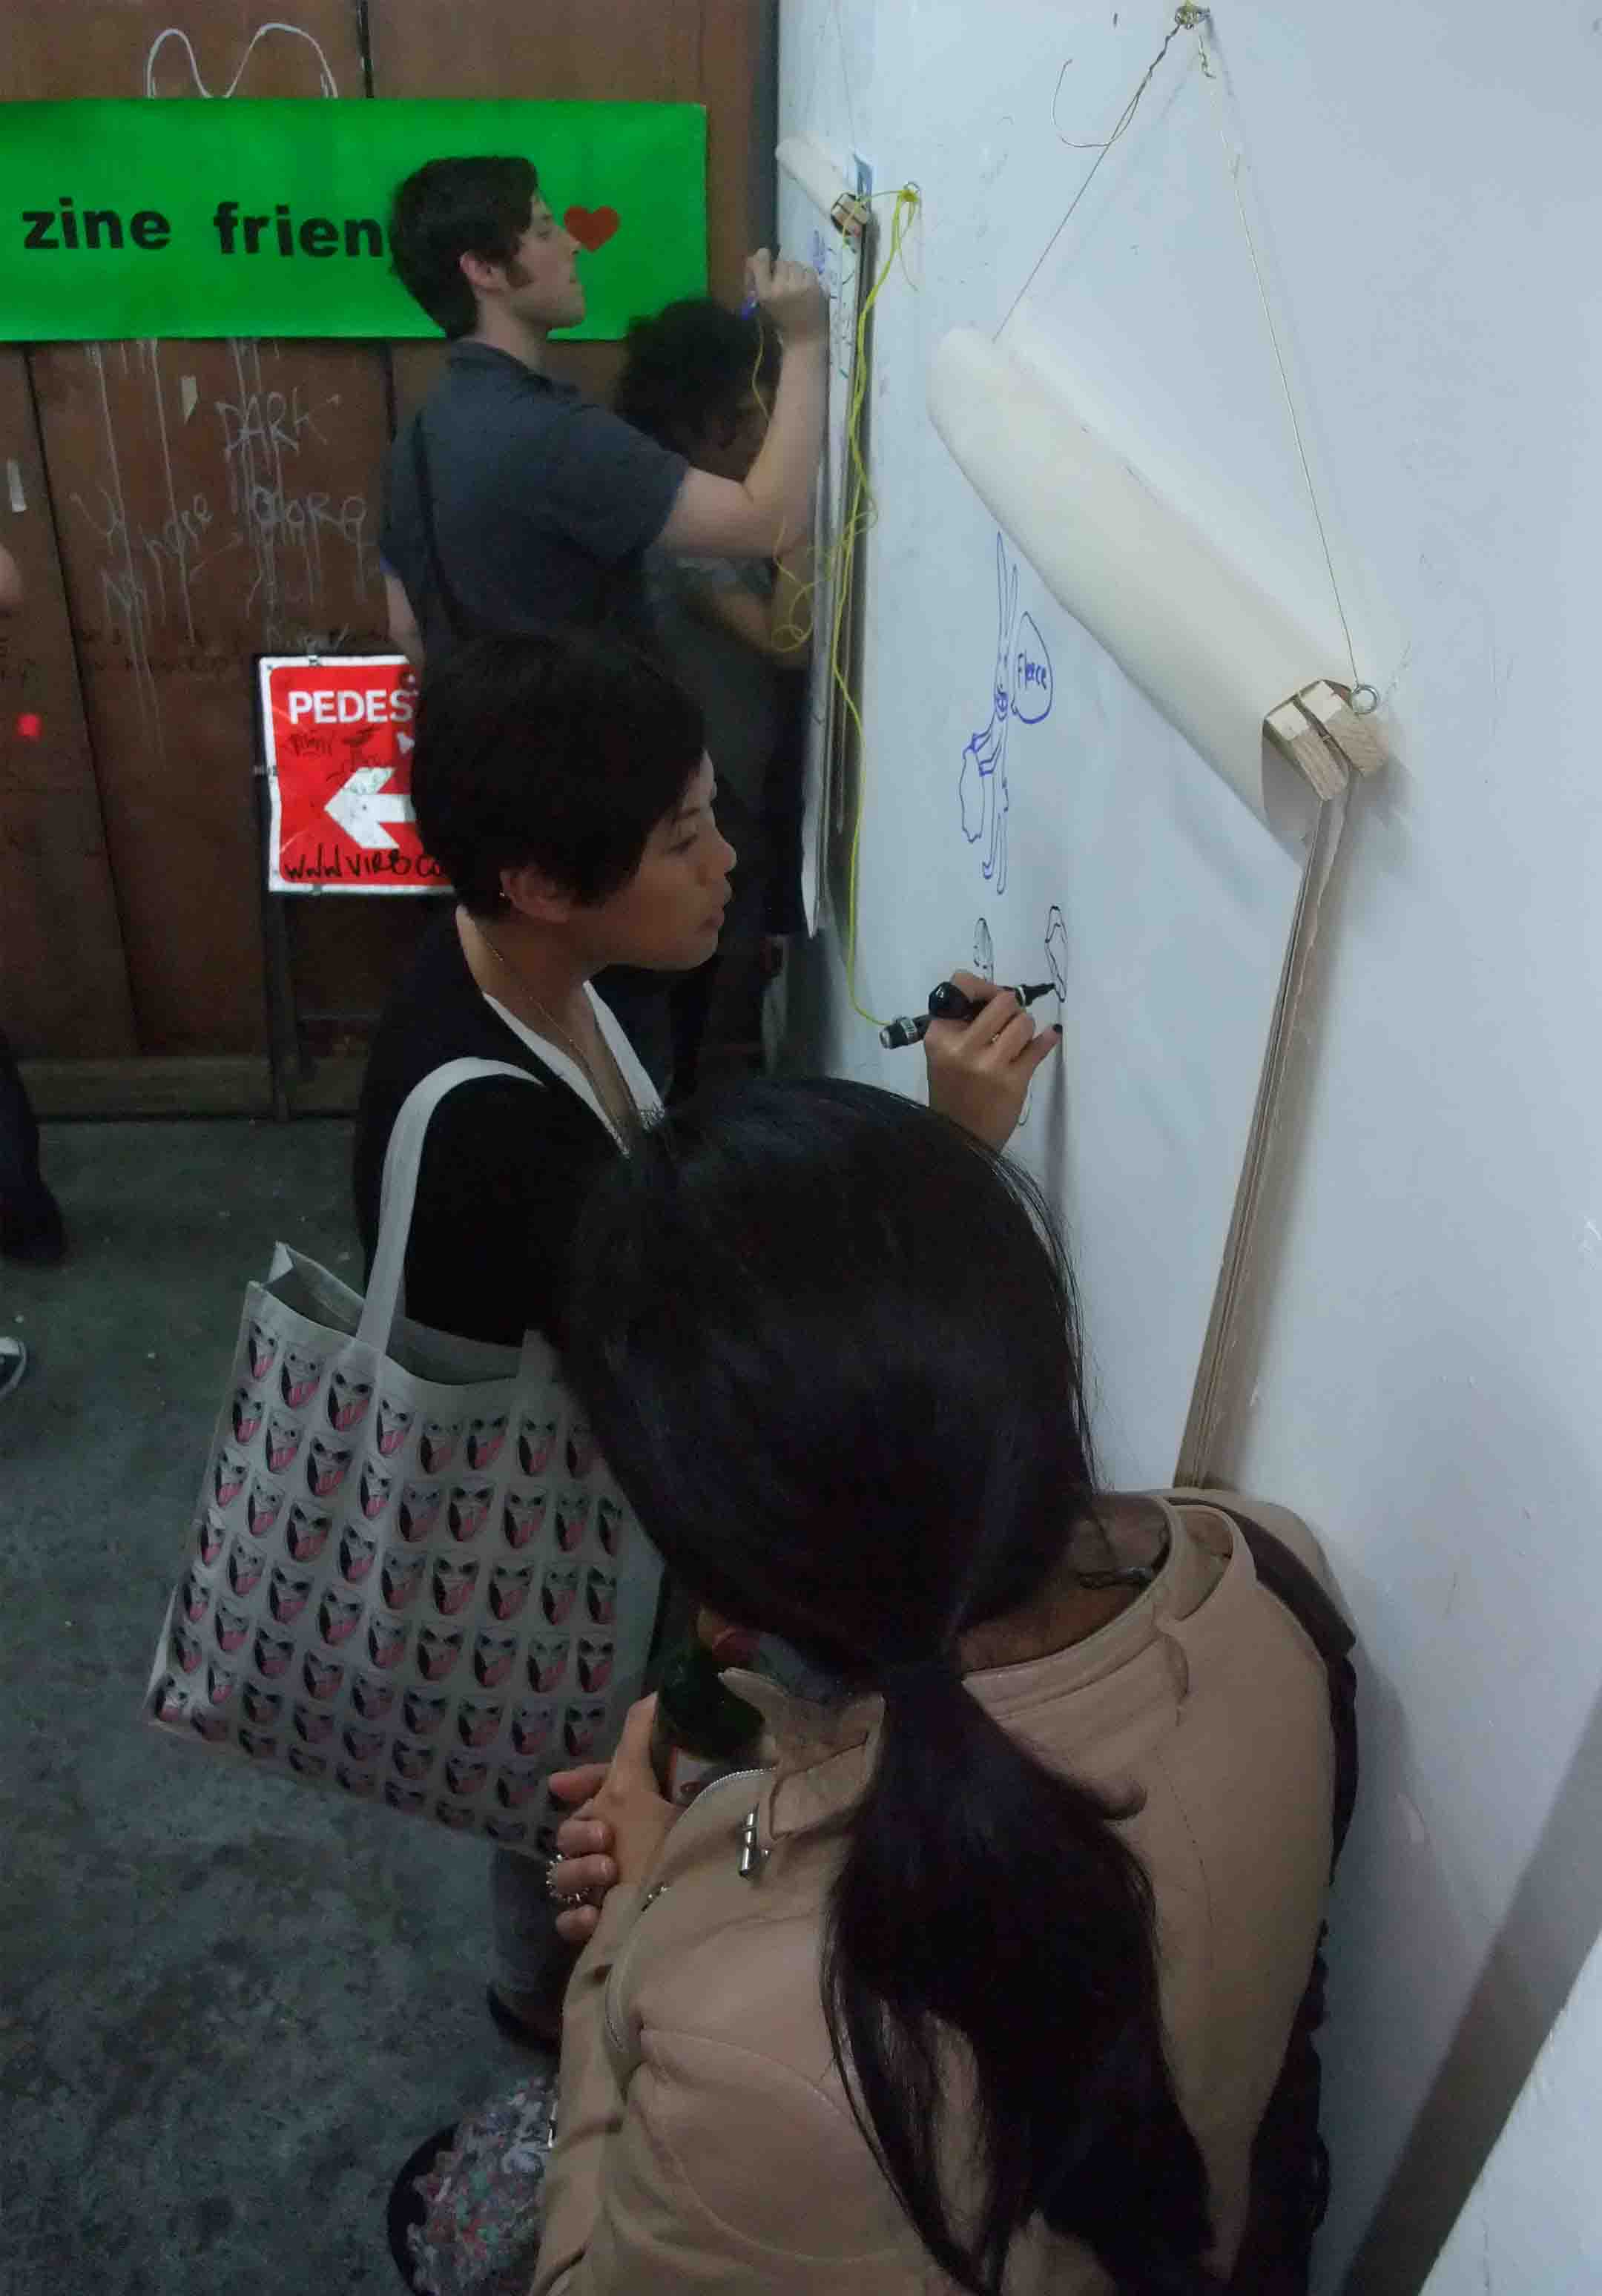 Passersby draw on the zine wall...